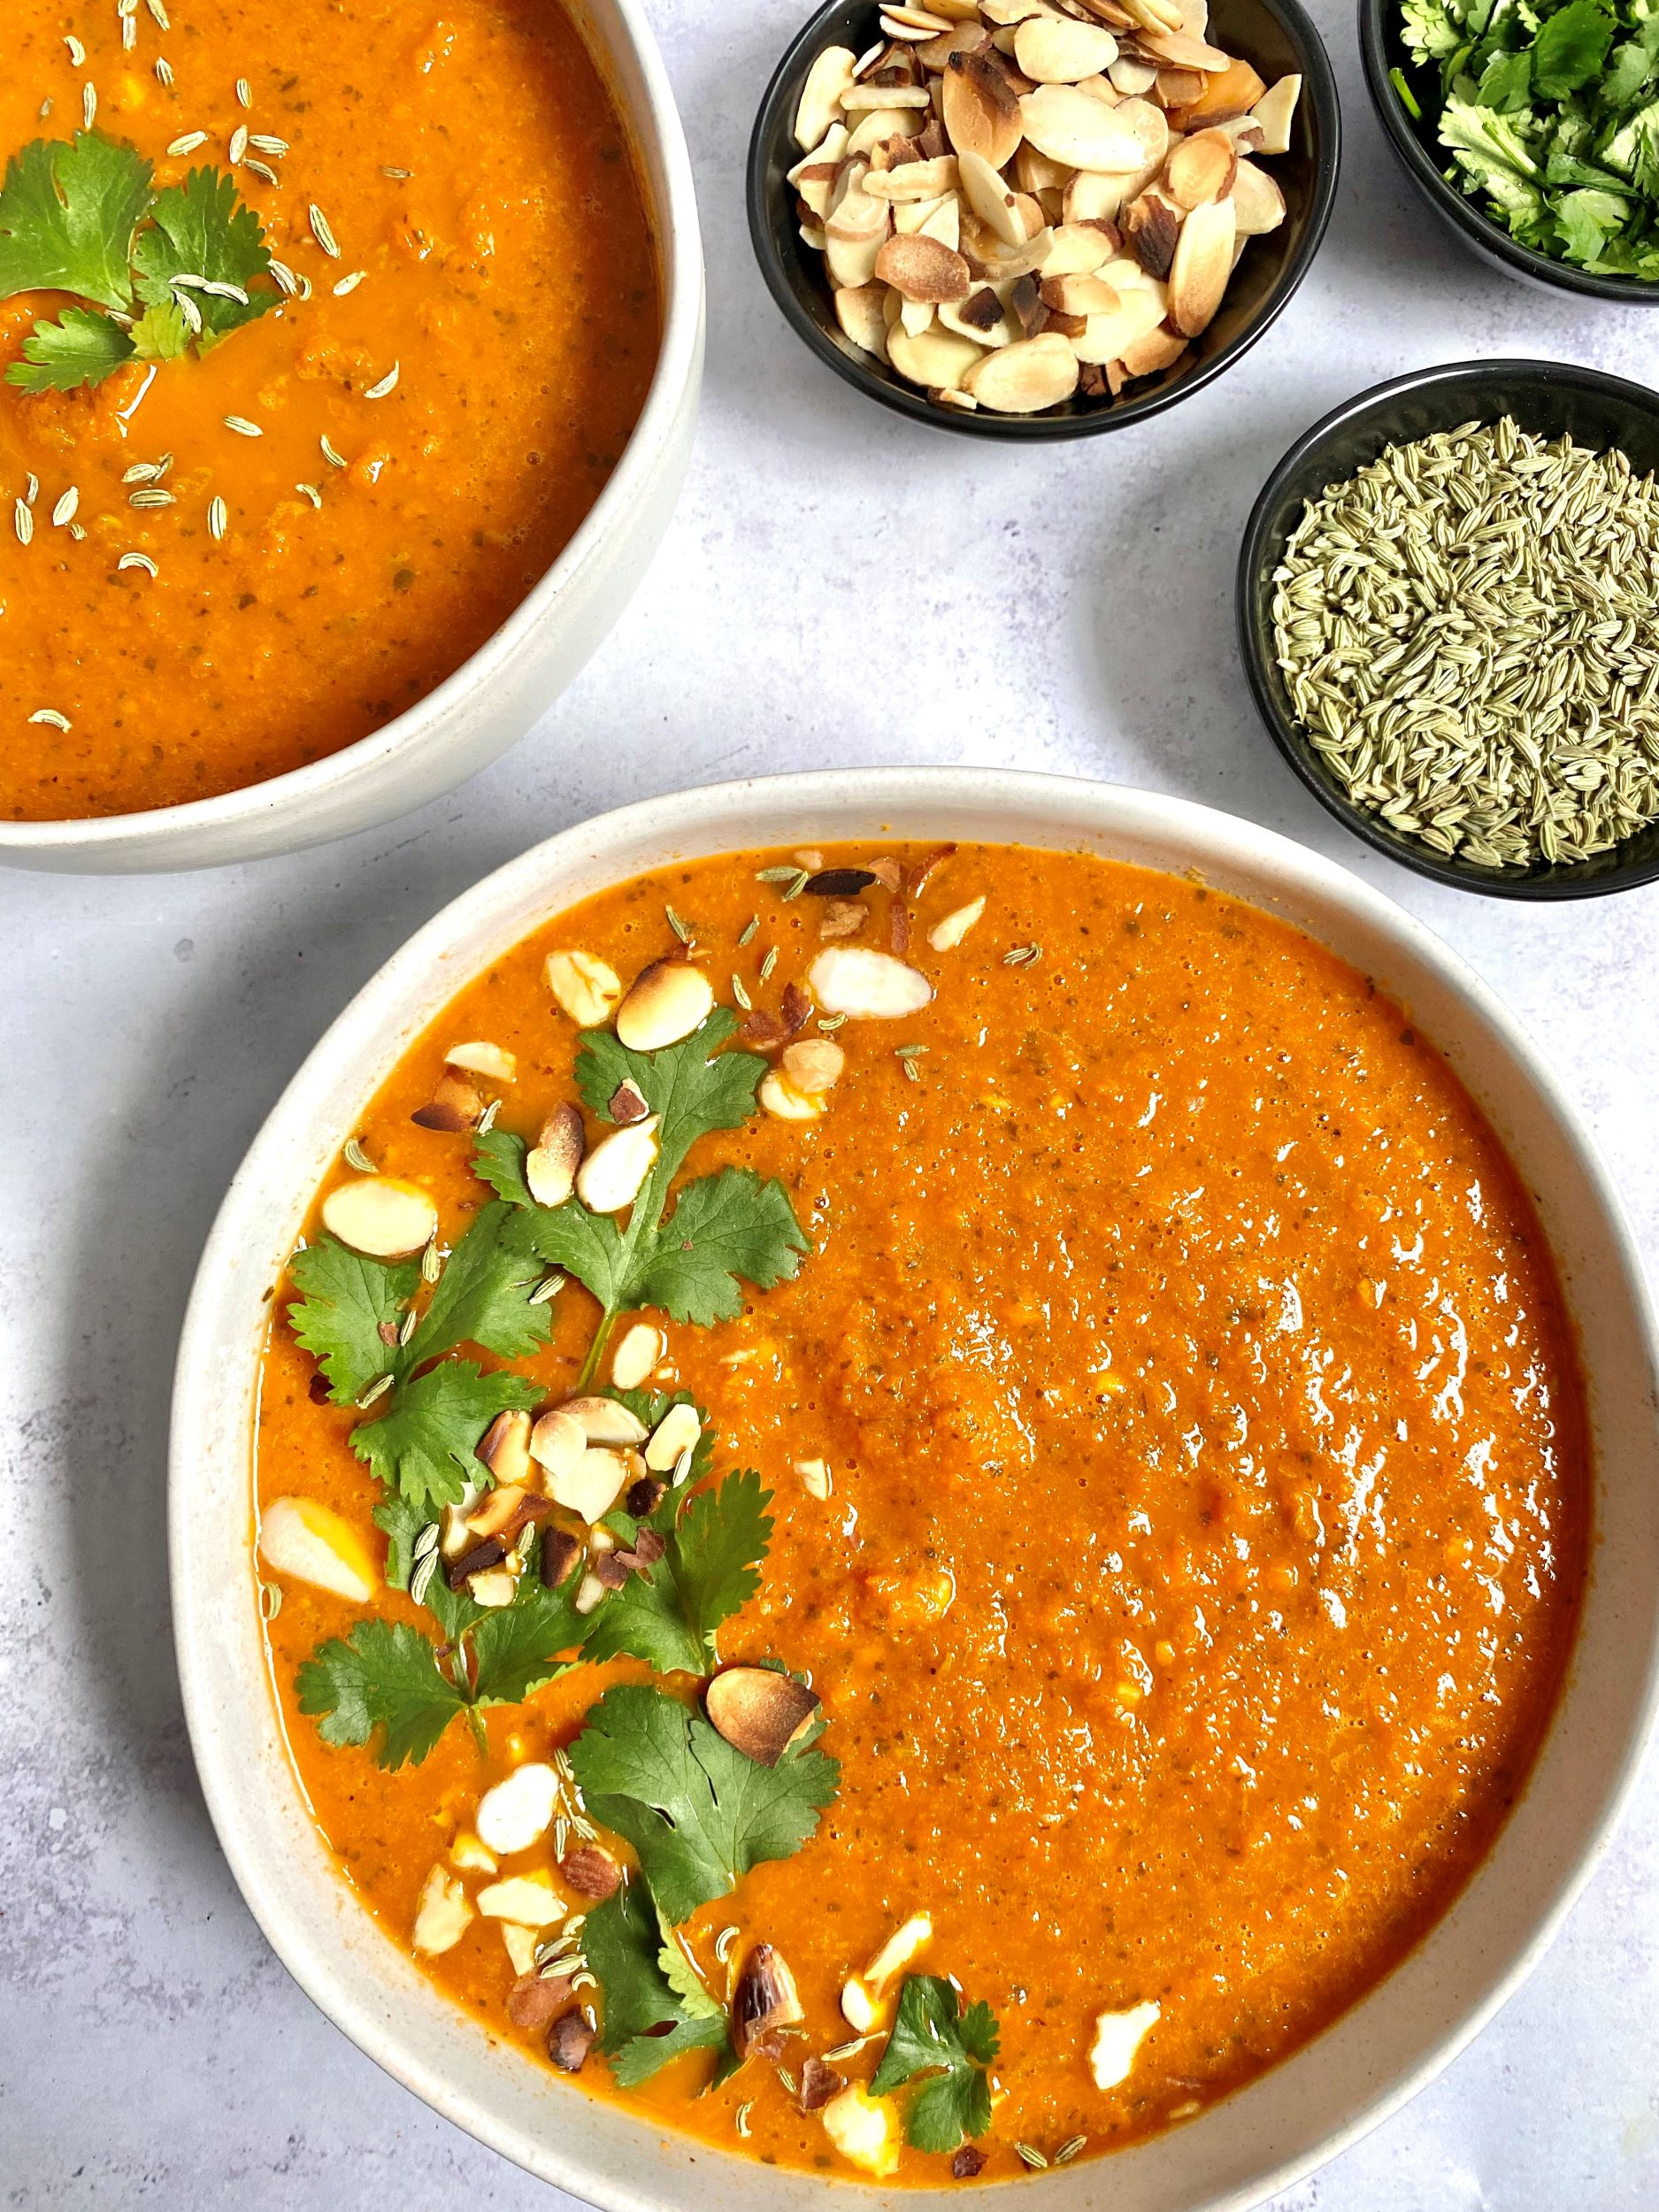 Caramelized Carrot Soup with Fennel